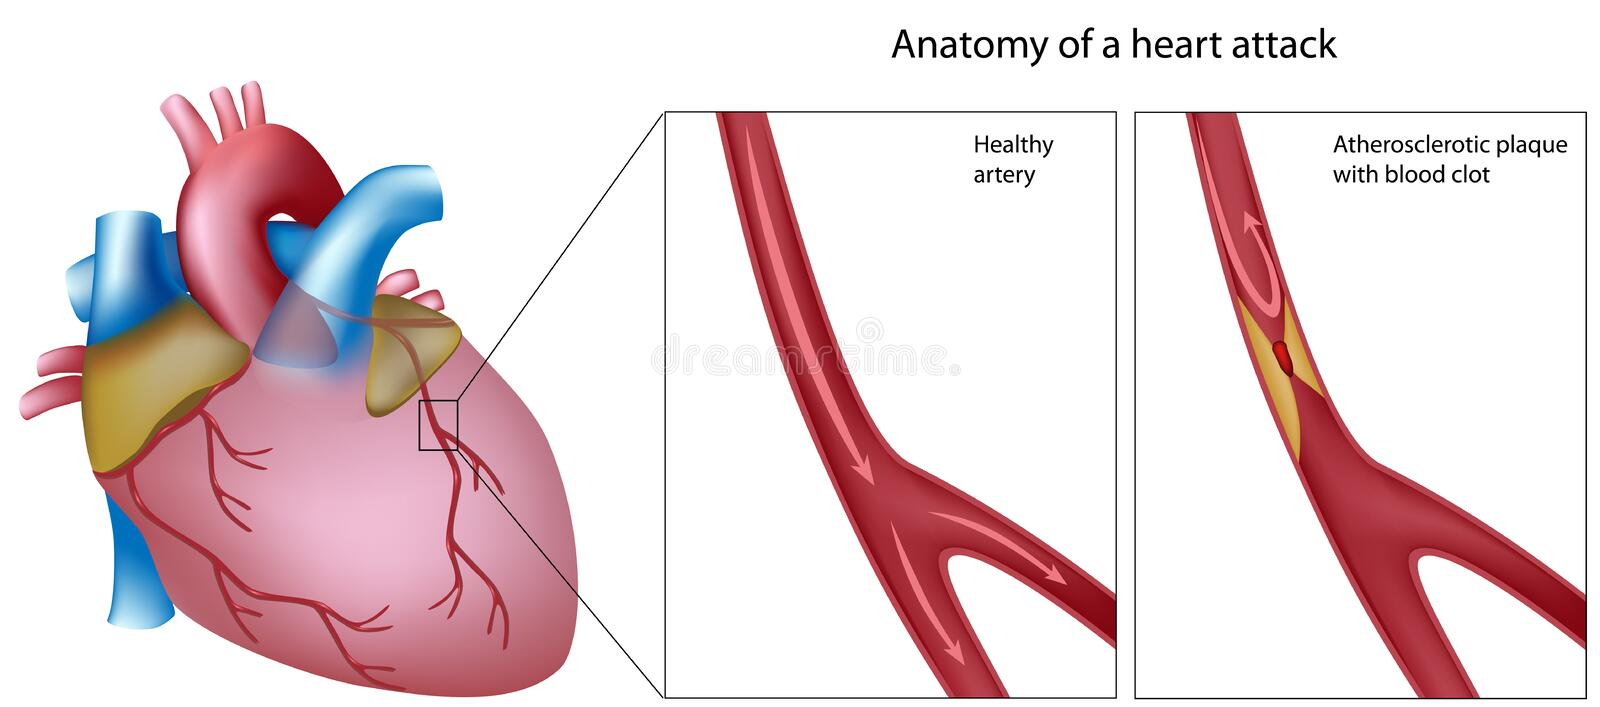 Anatomy of heart attack royalty free illustration